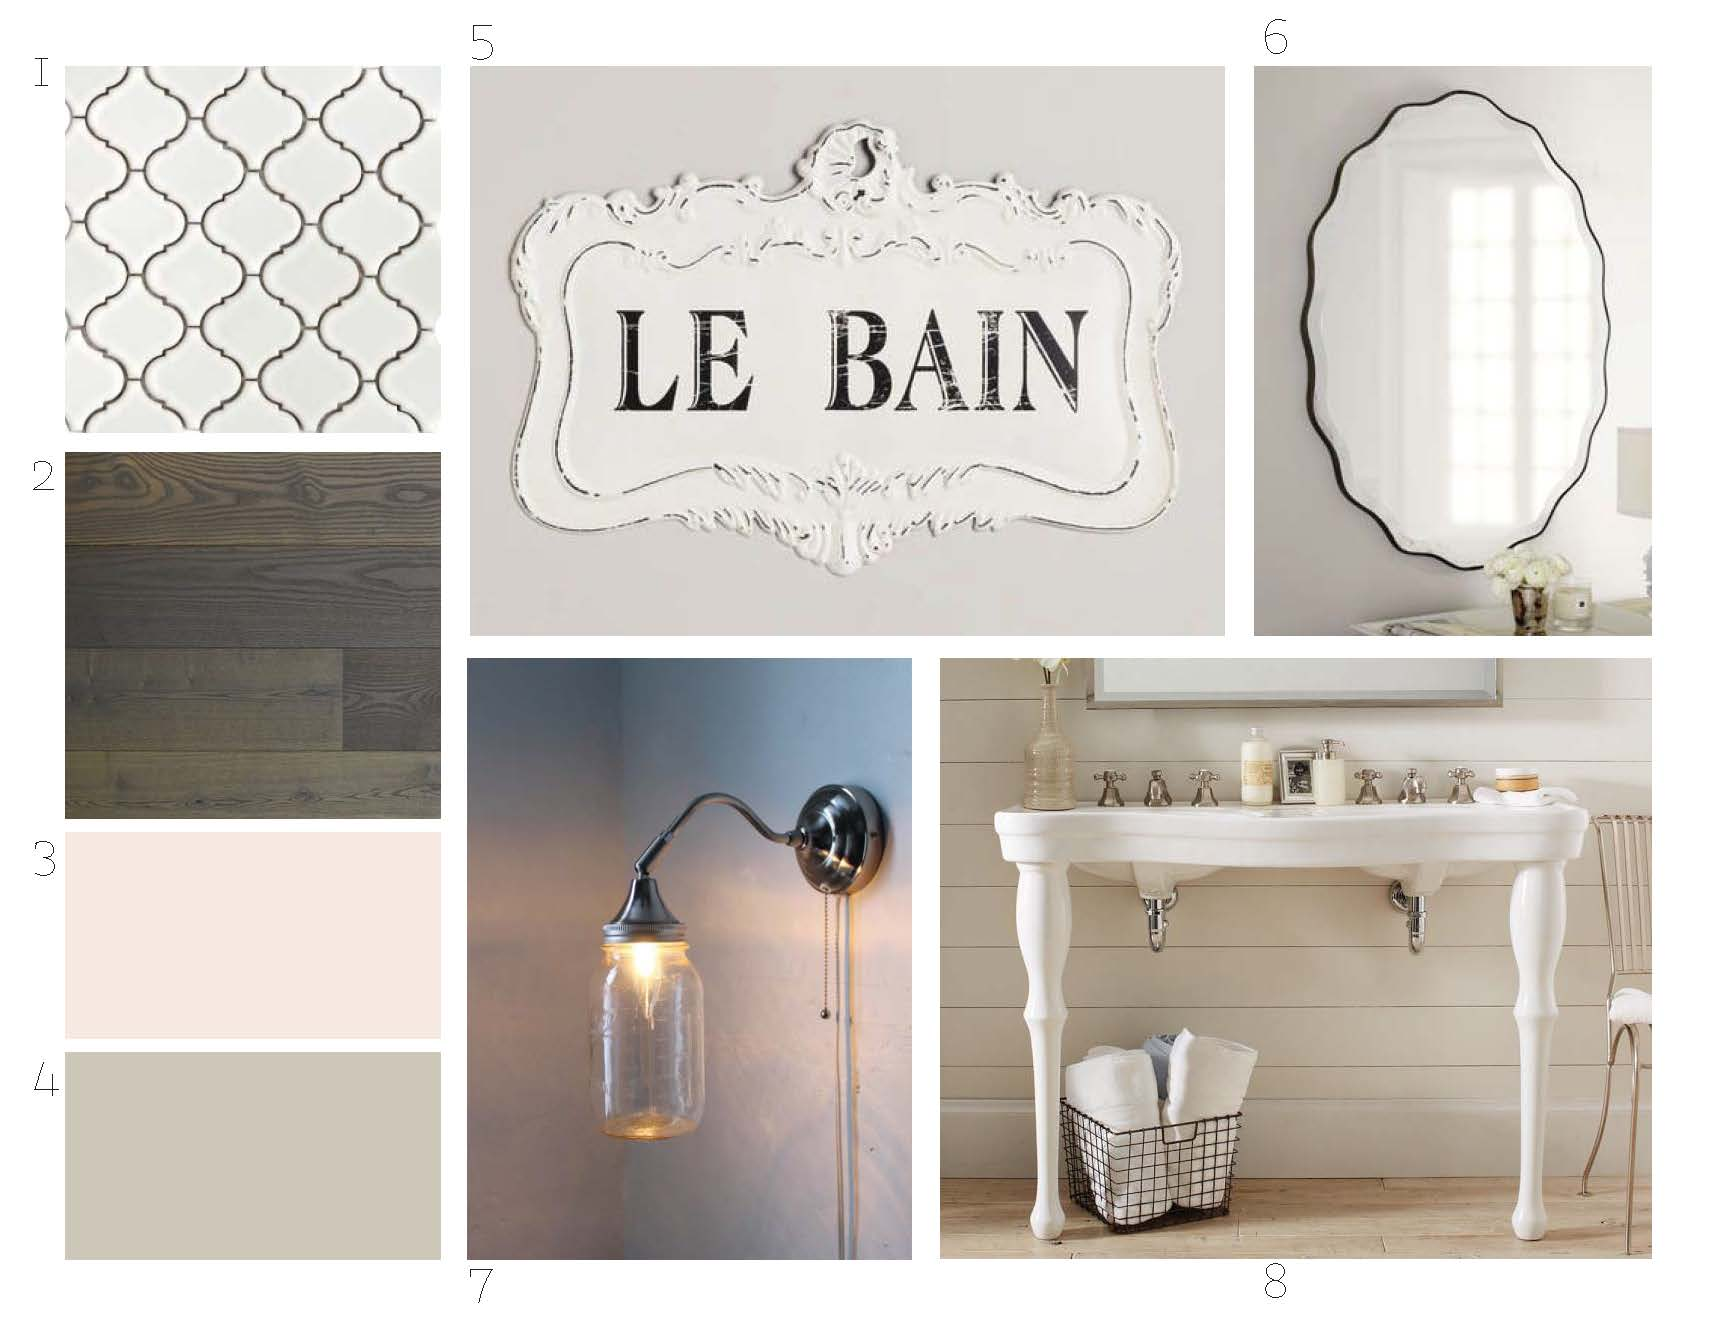 Hereu0027s The List Of Products And Finishes I Have Used For This Hypothetical  Vintage French Industrial Inspired Bathroom!